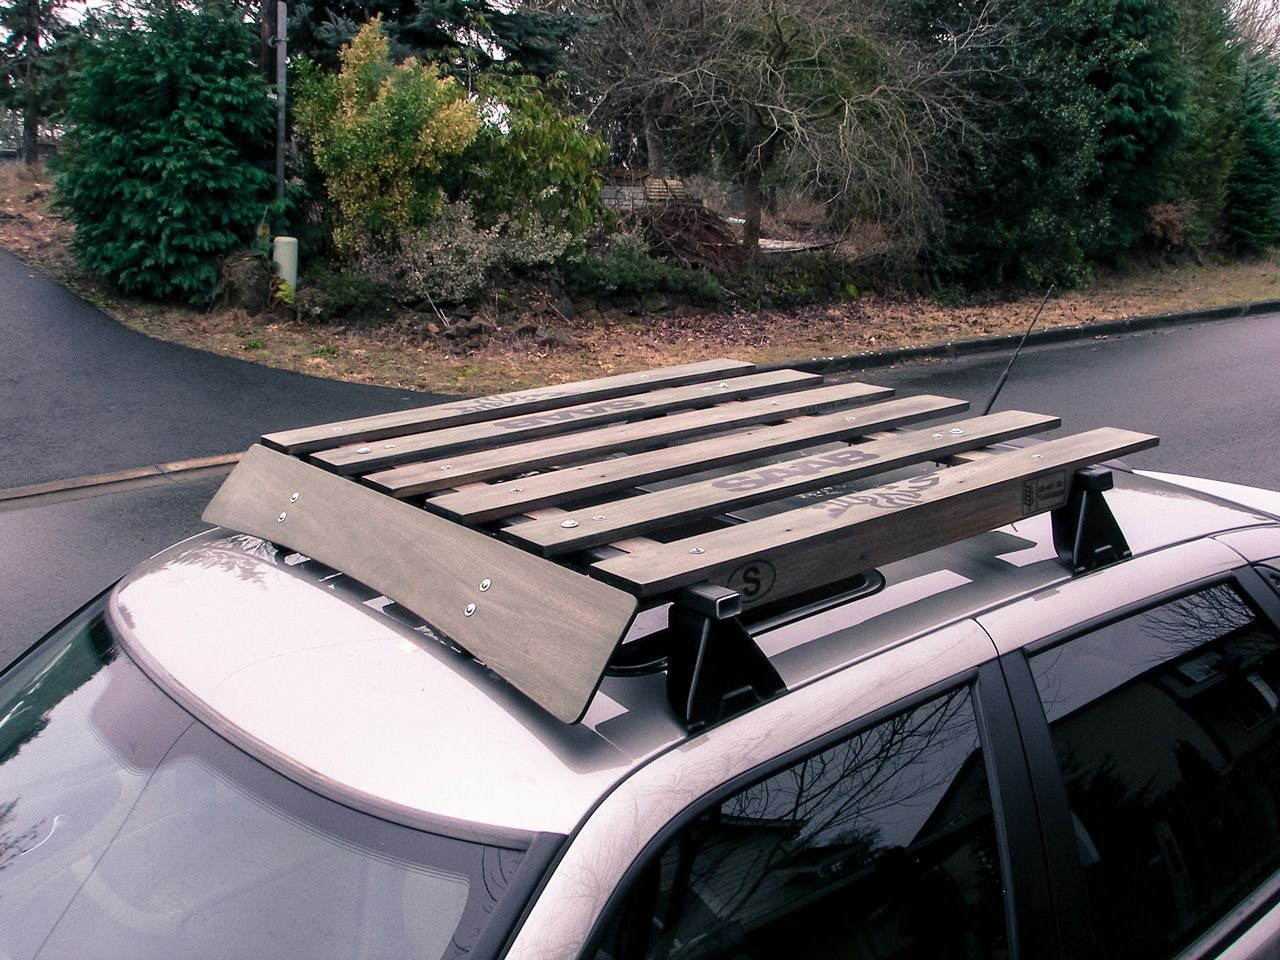 Www Saabcentral Com Forums Showthread Php T 568562 Car Roof Racks Roof Rack Wood Roof